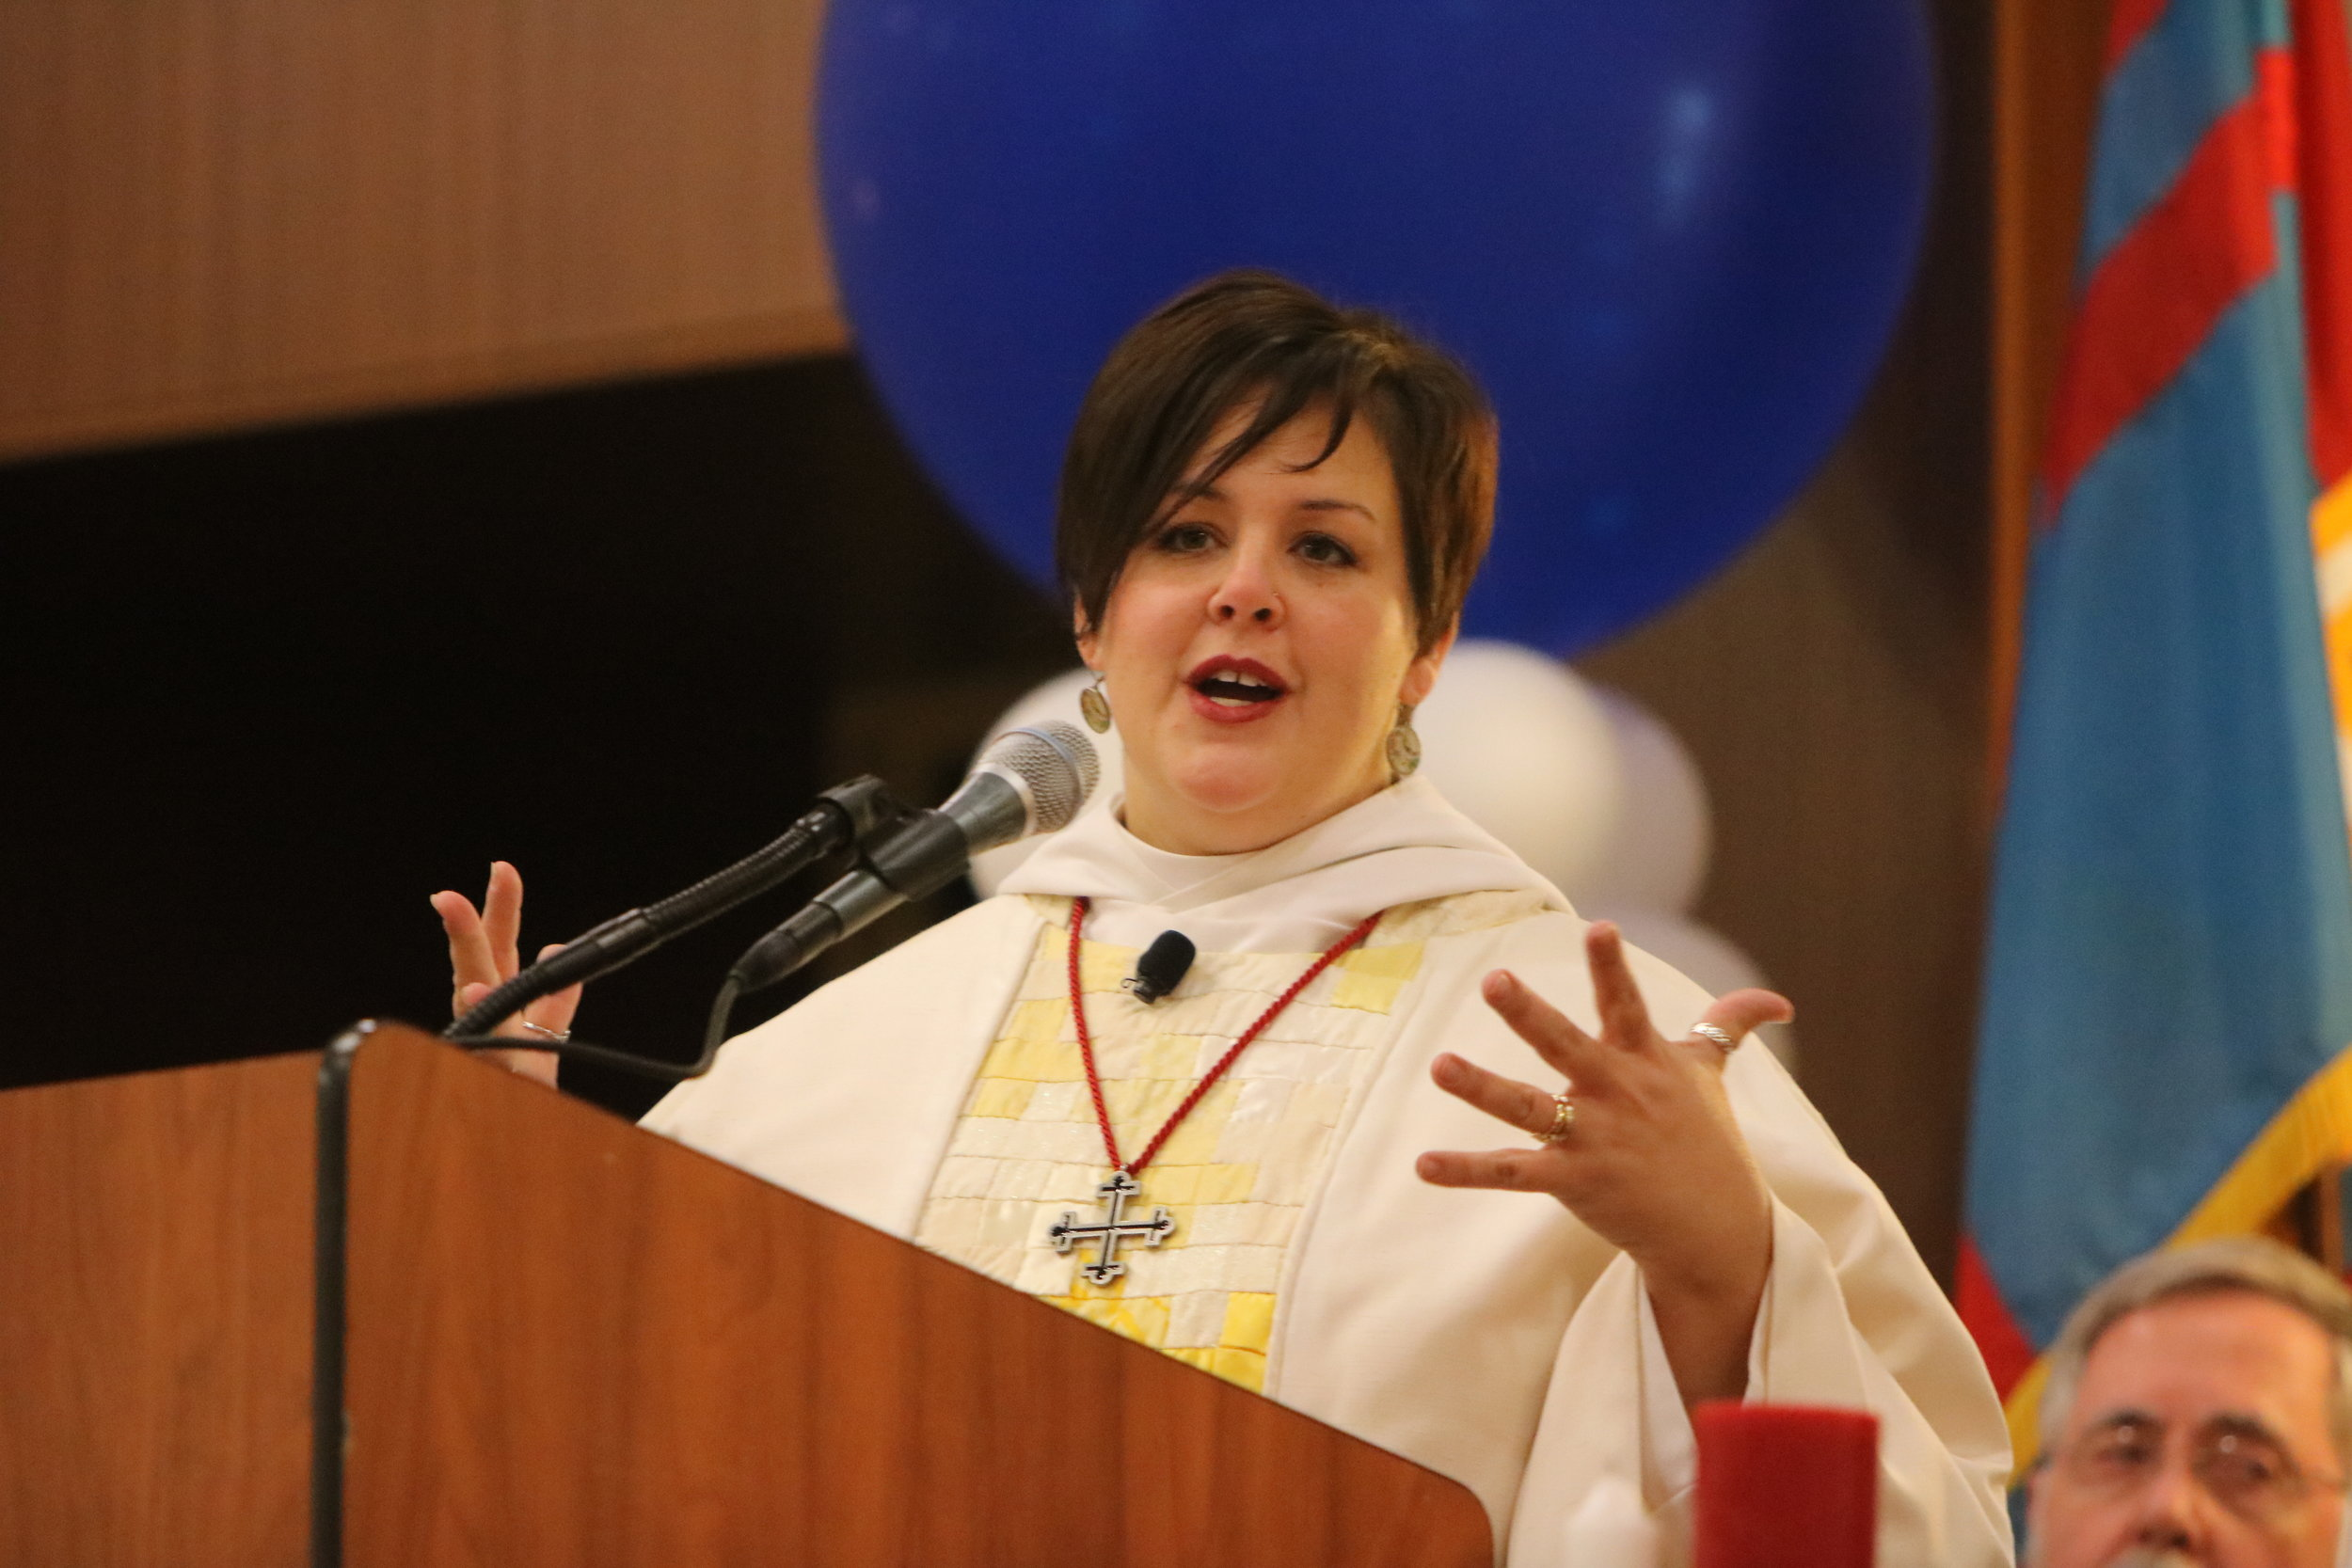 2016 11 11 Diocesan Convention 148 credit Sue Cenci Carrie Schofield-Broadbent preaches.JPG